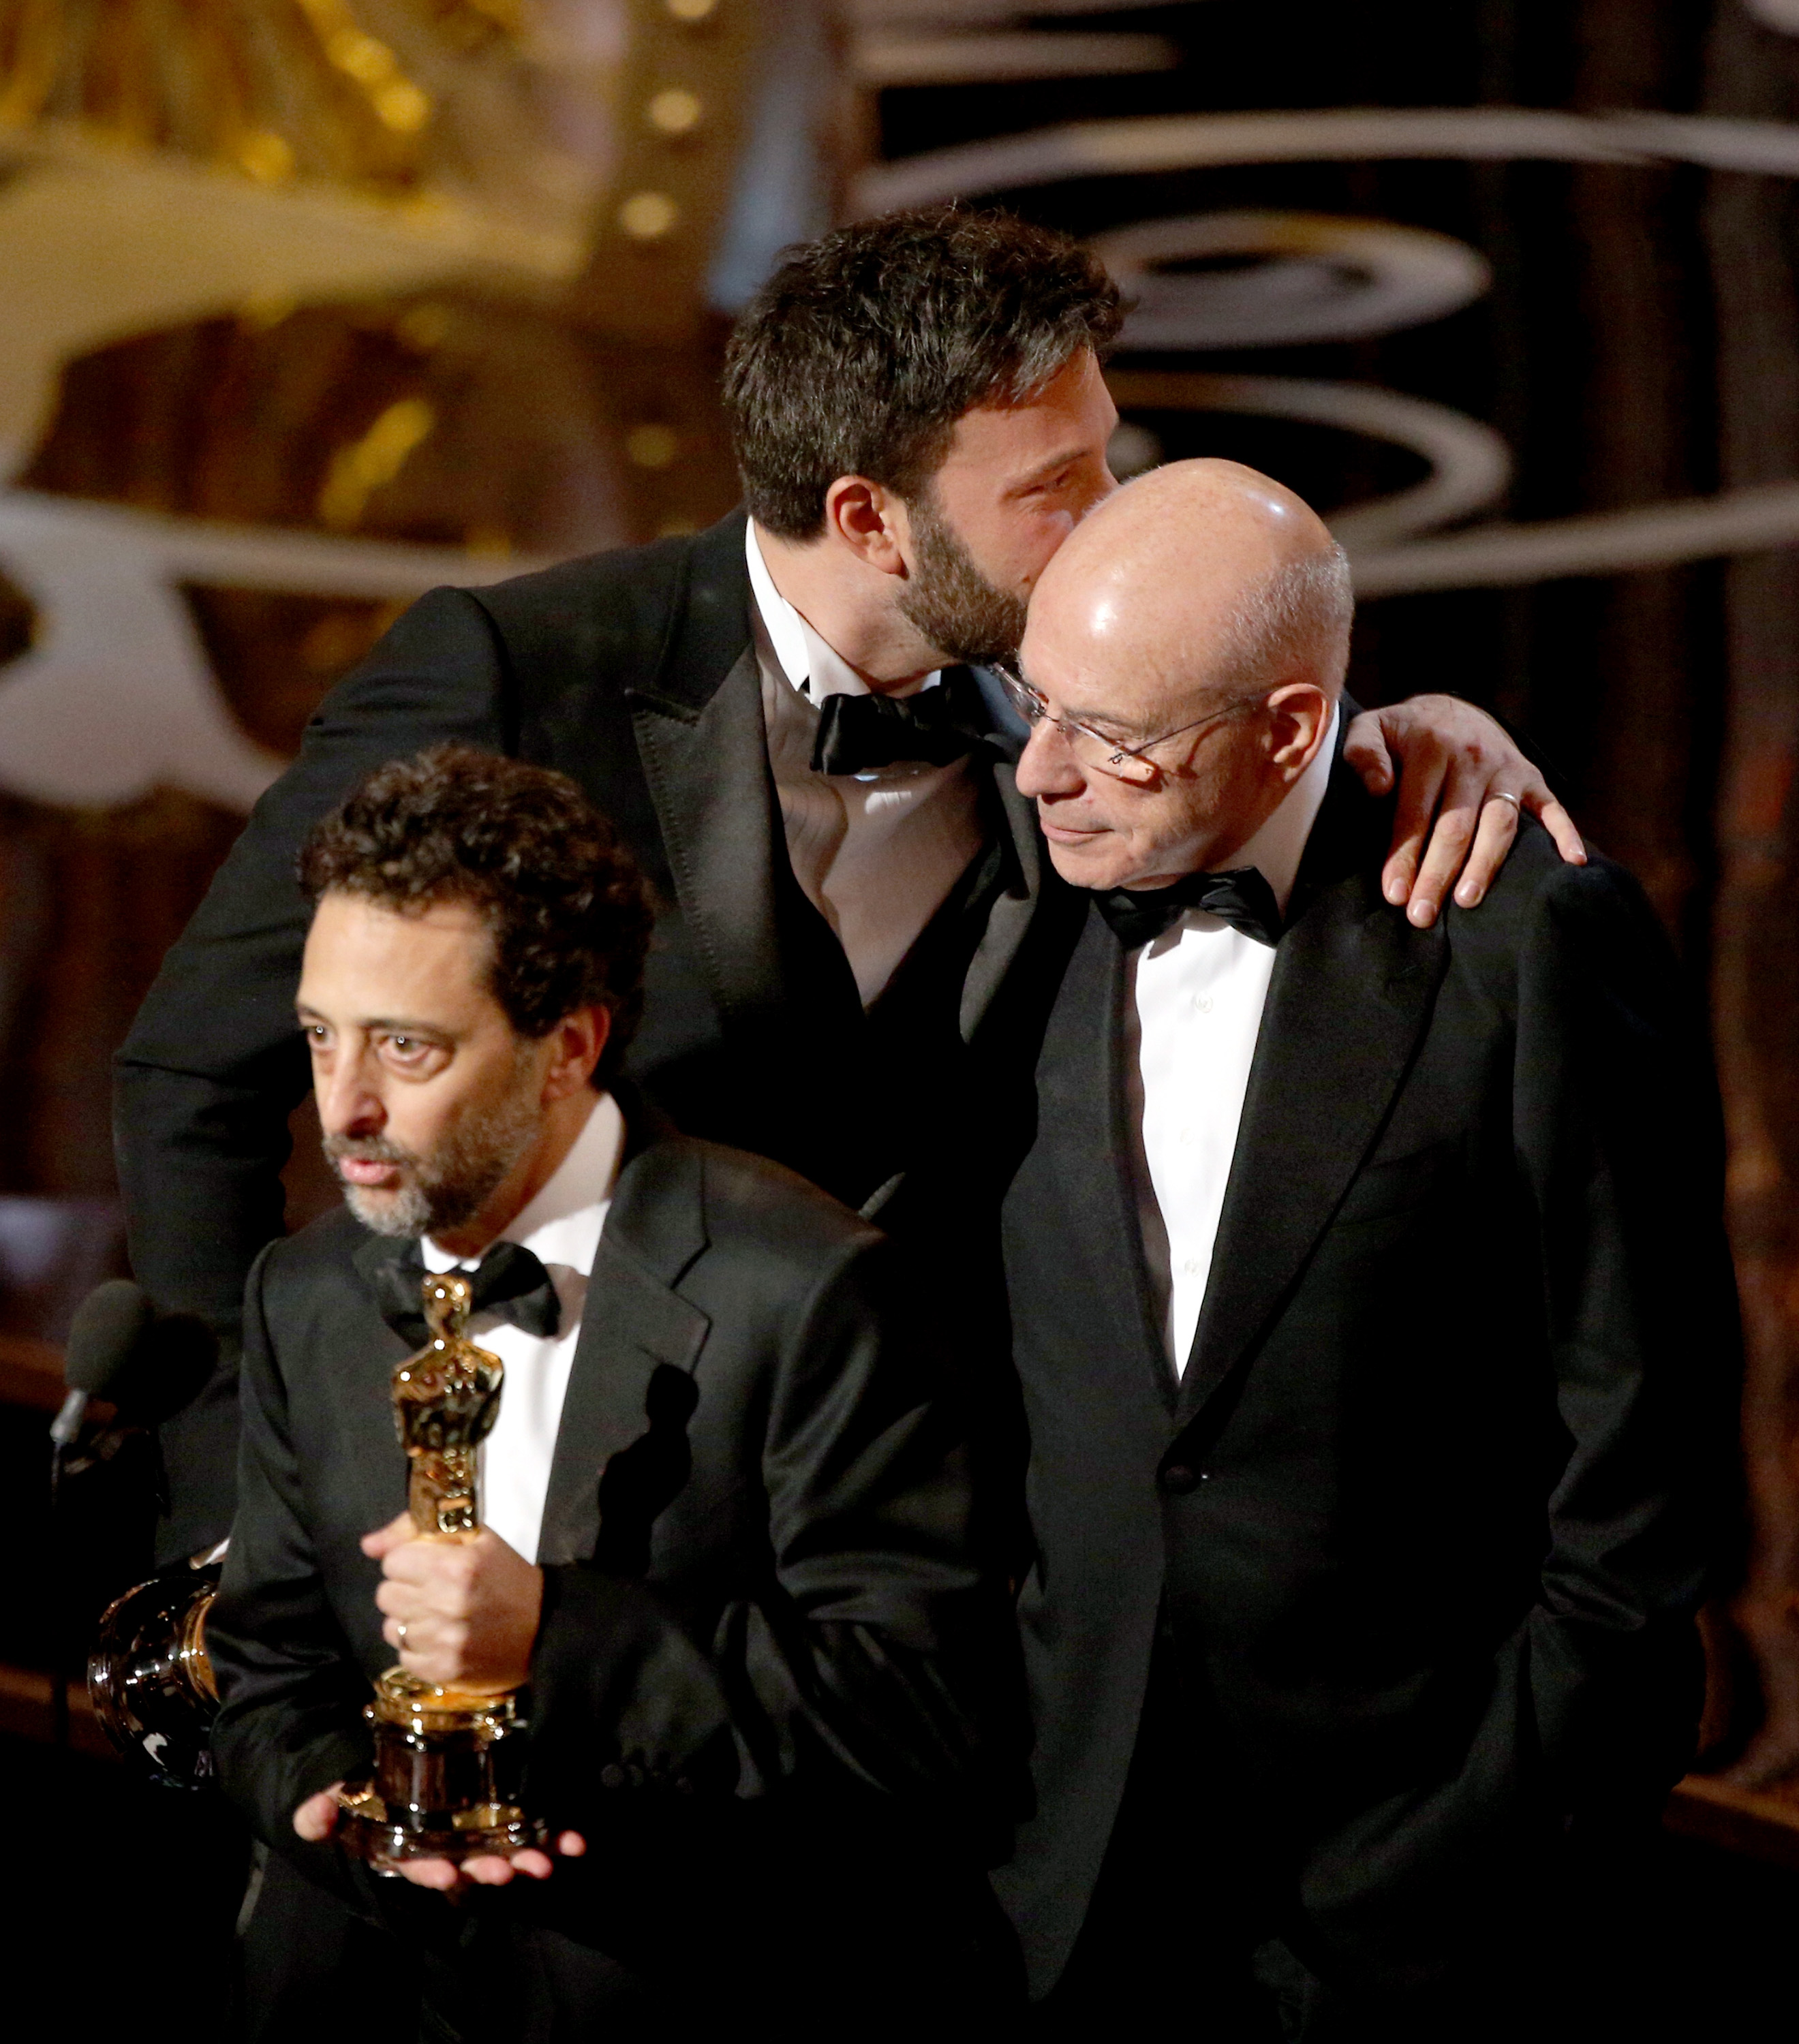 Ben Affleck kissed Alan Arkin on stage while Grant Heslov gave an acceptance speech for Argo's best picture won.